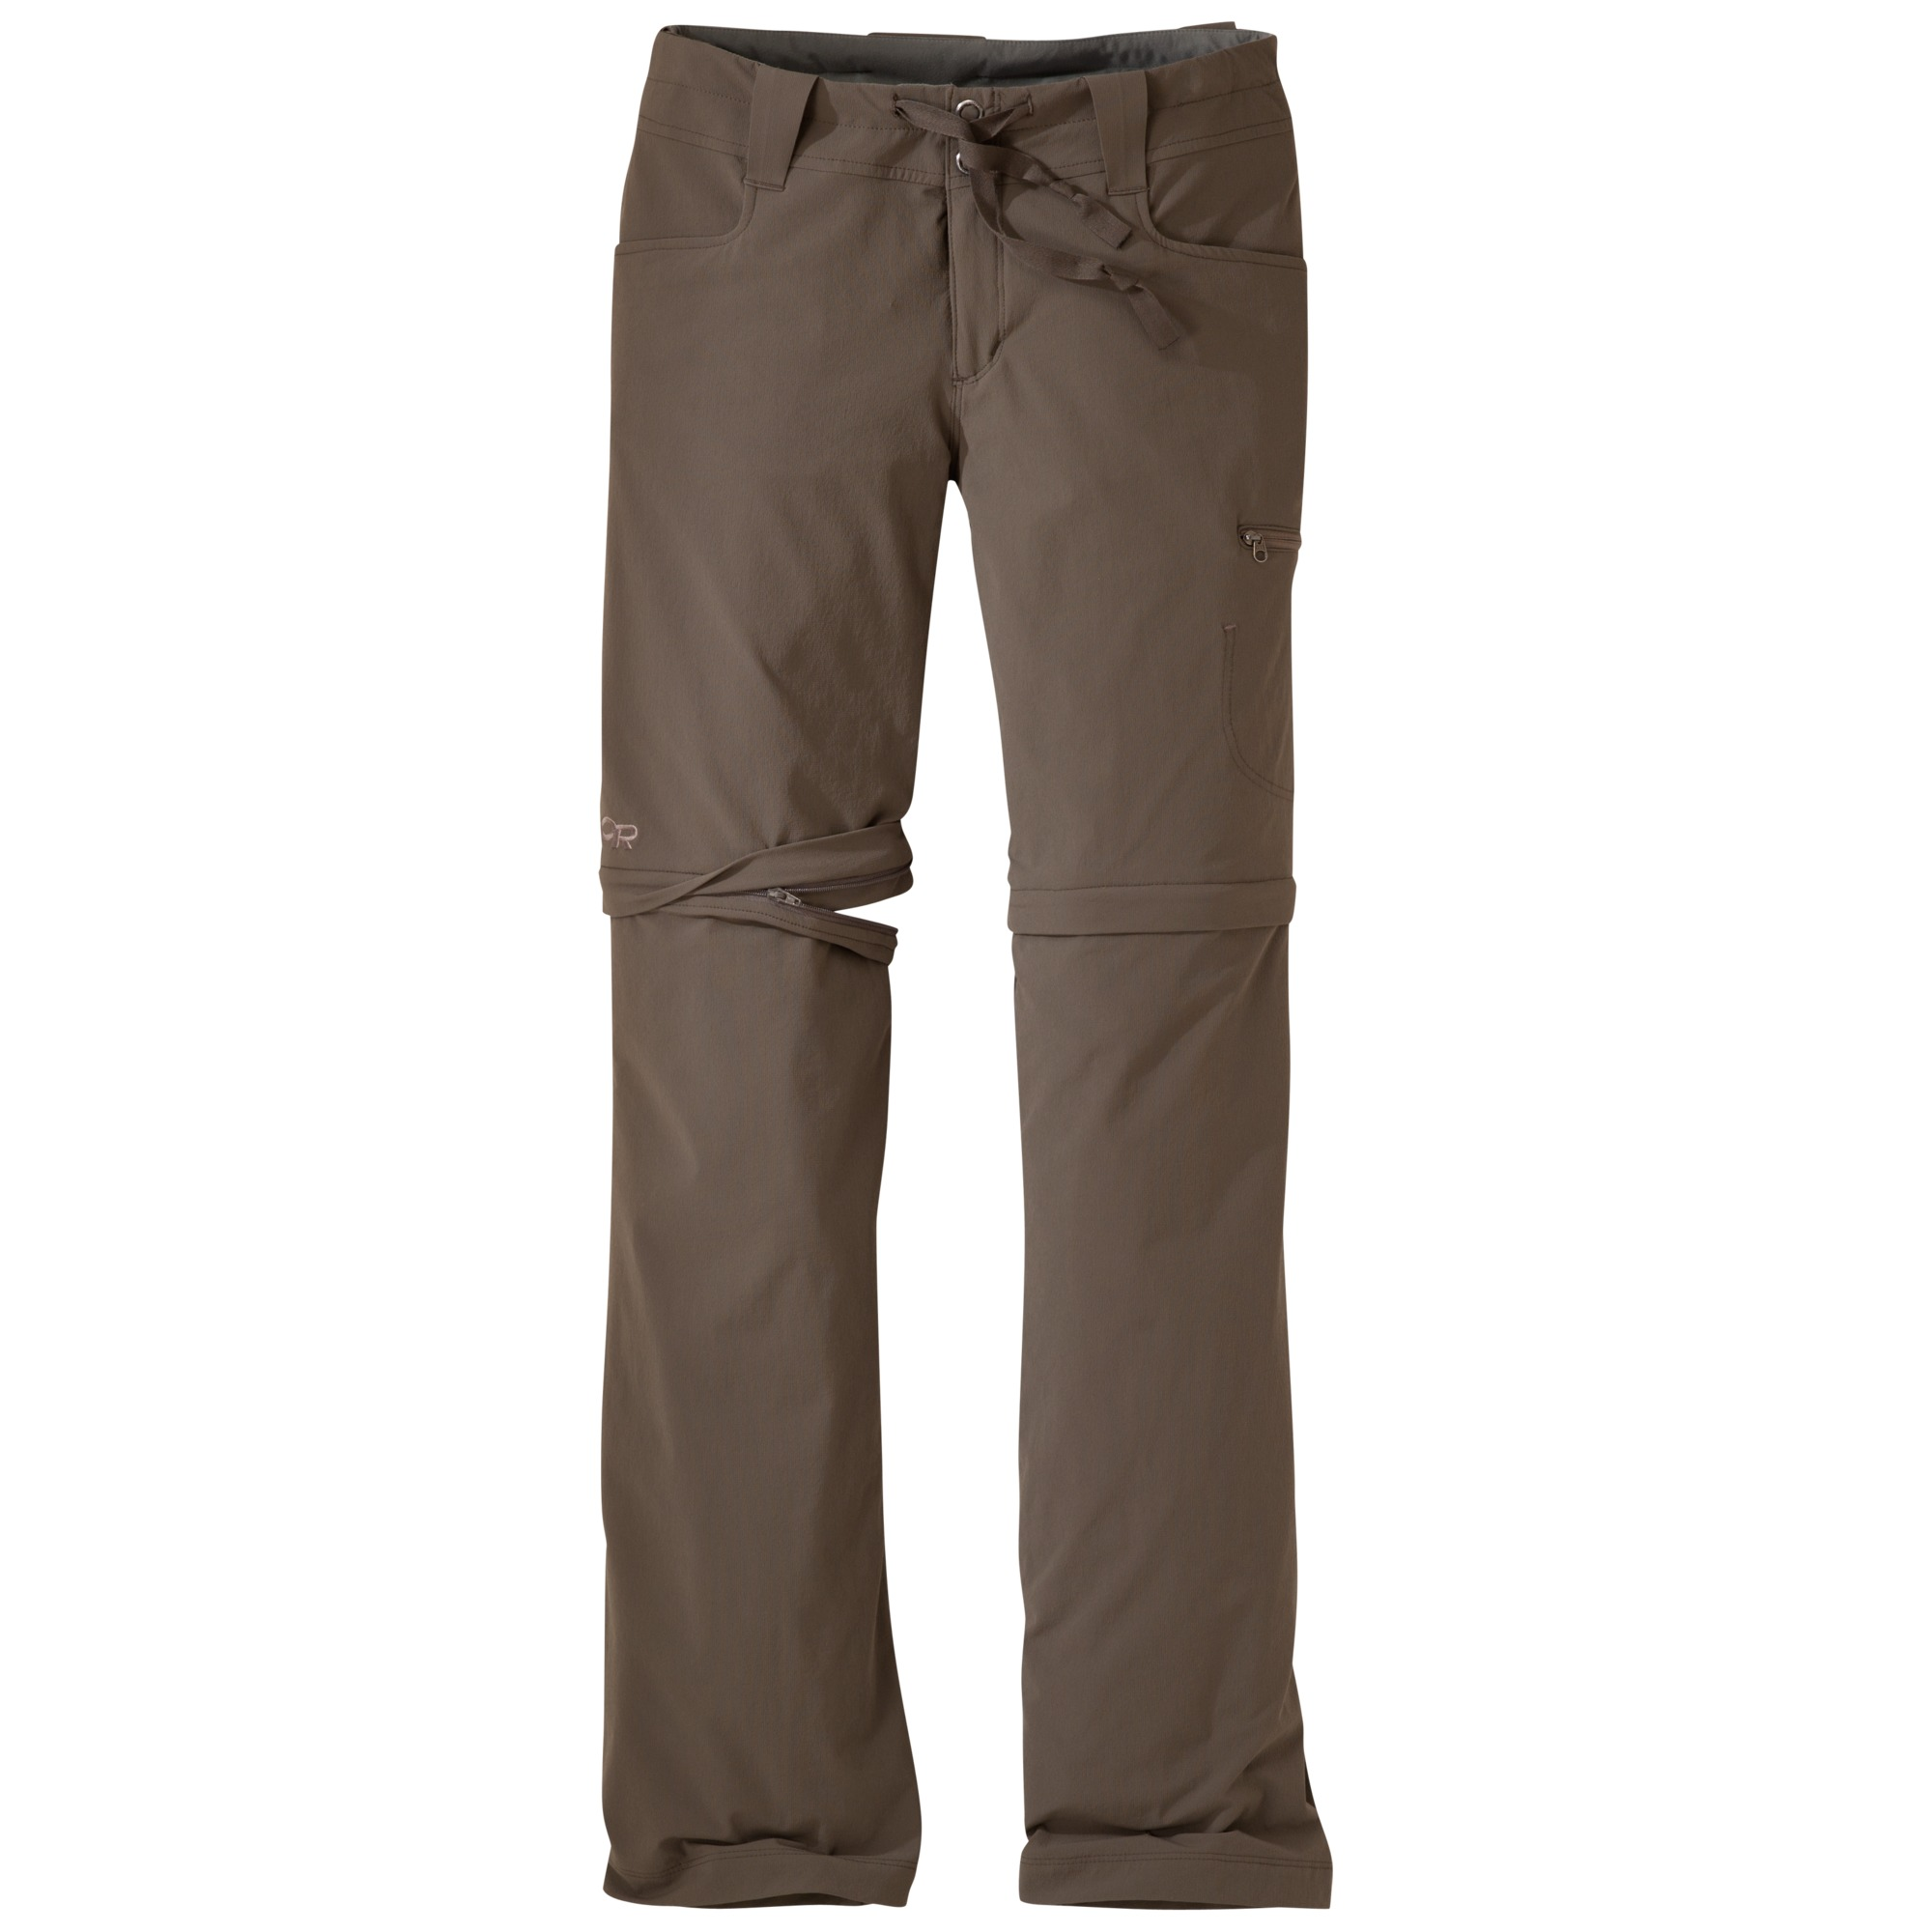 Outdoor Research Women's Ferrosi Convertible Pants-mushroom-4 - Gr. 4